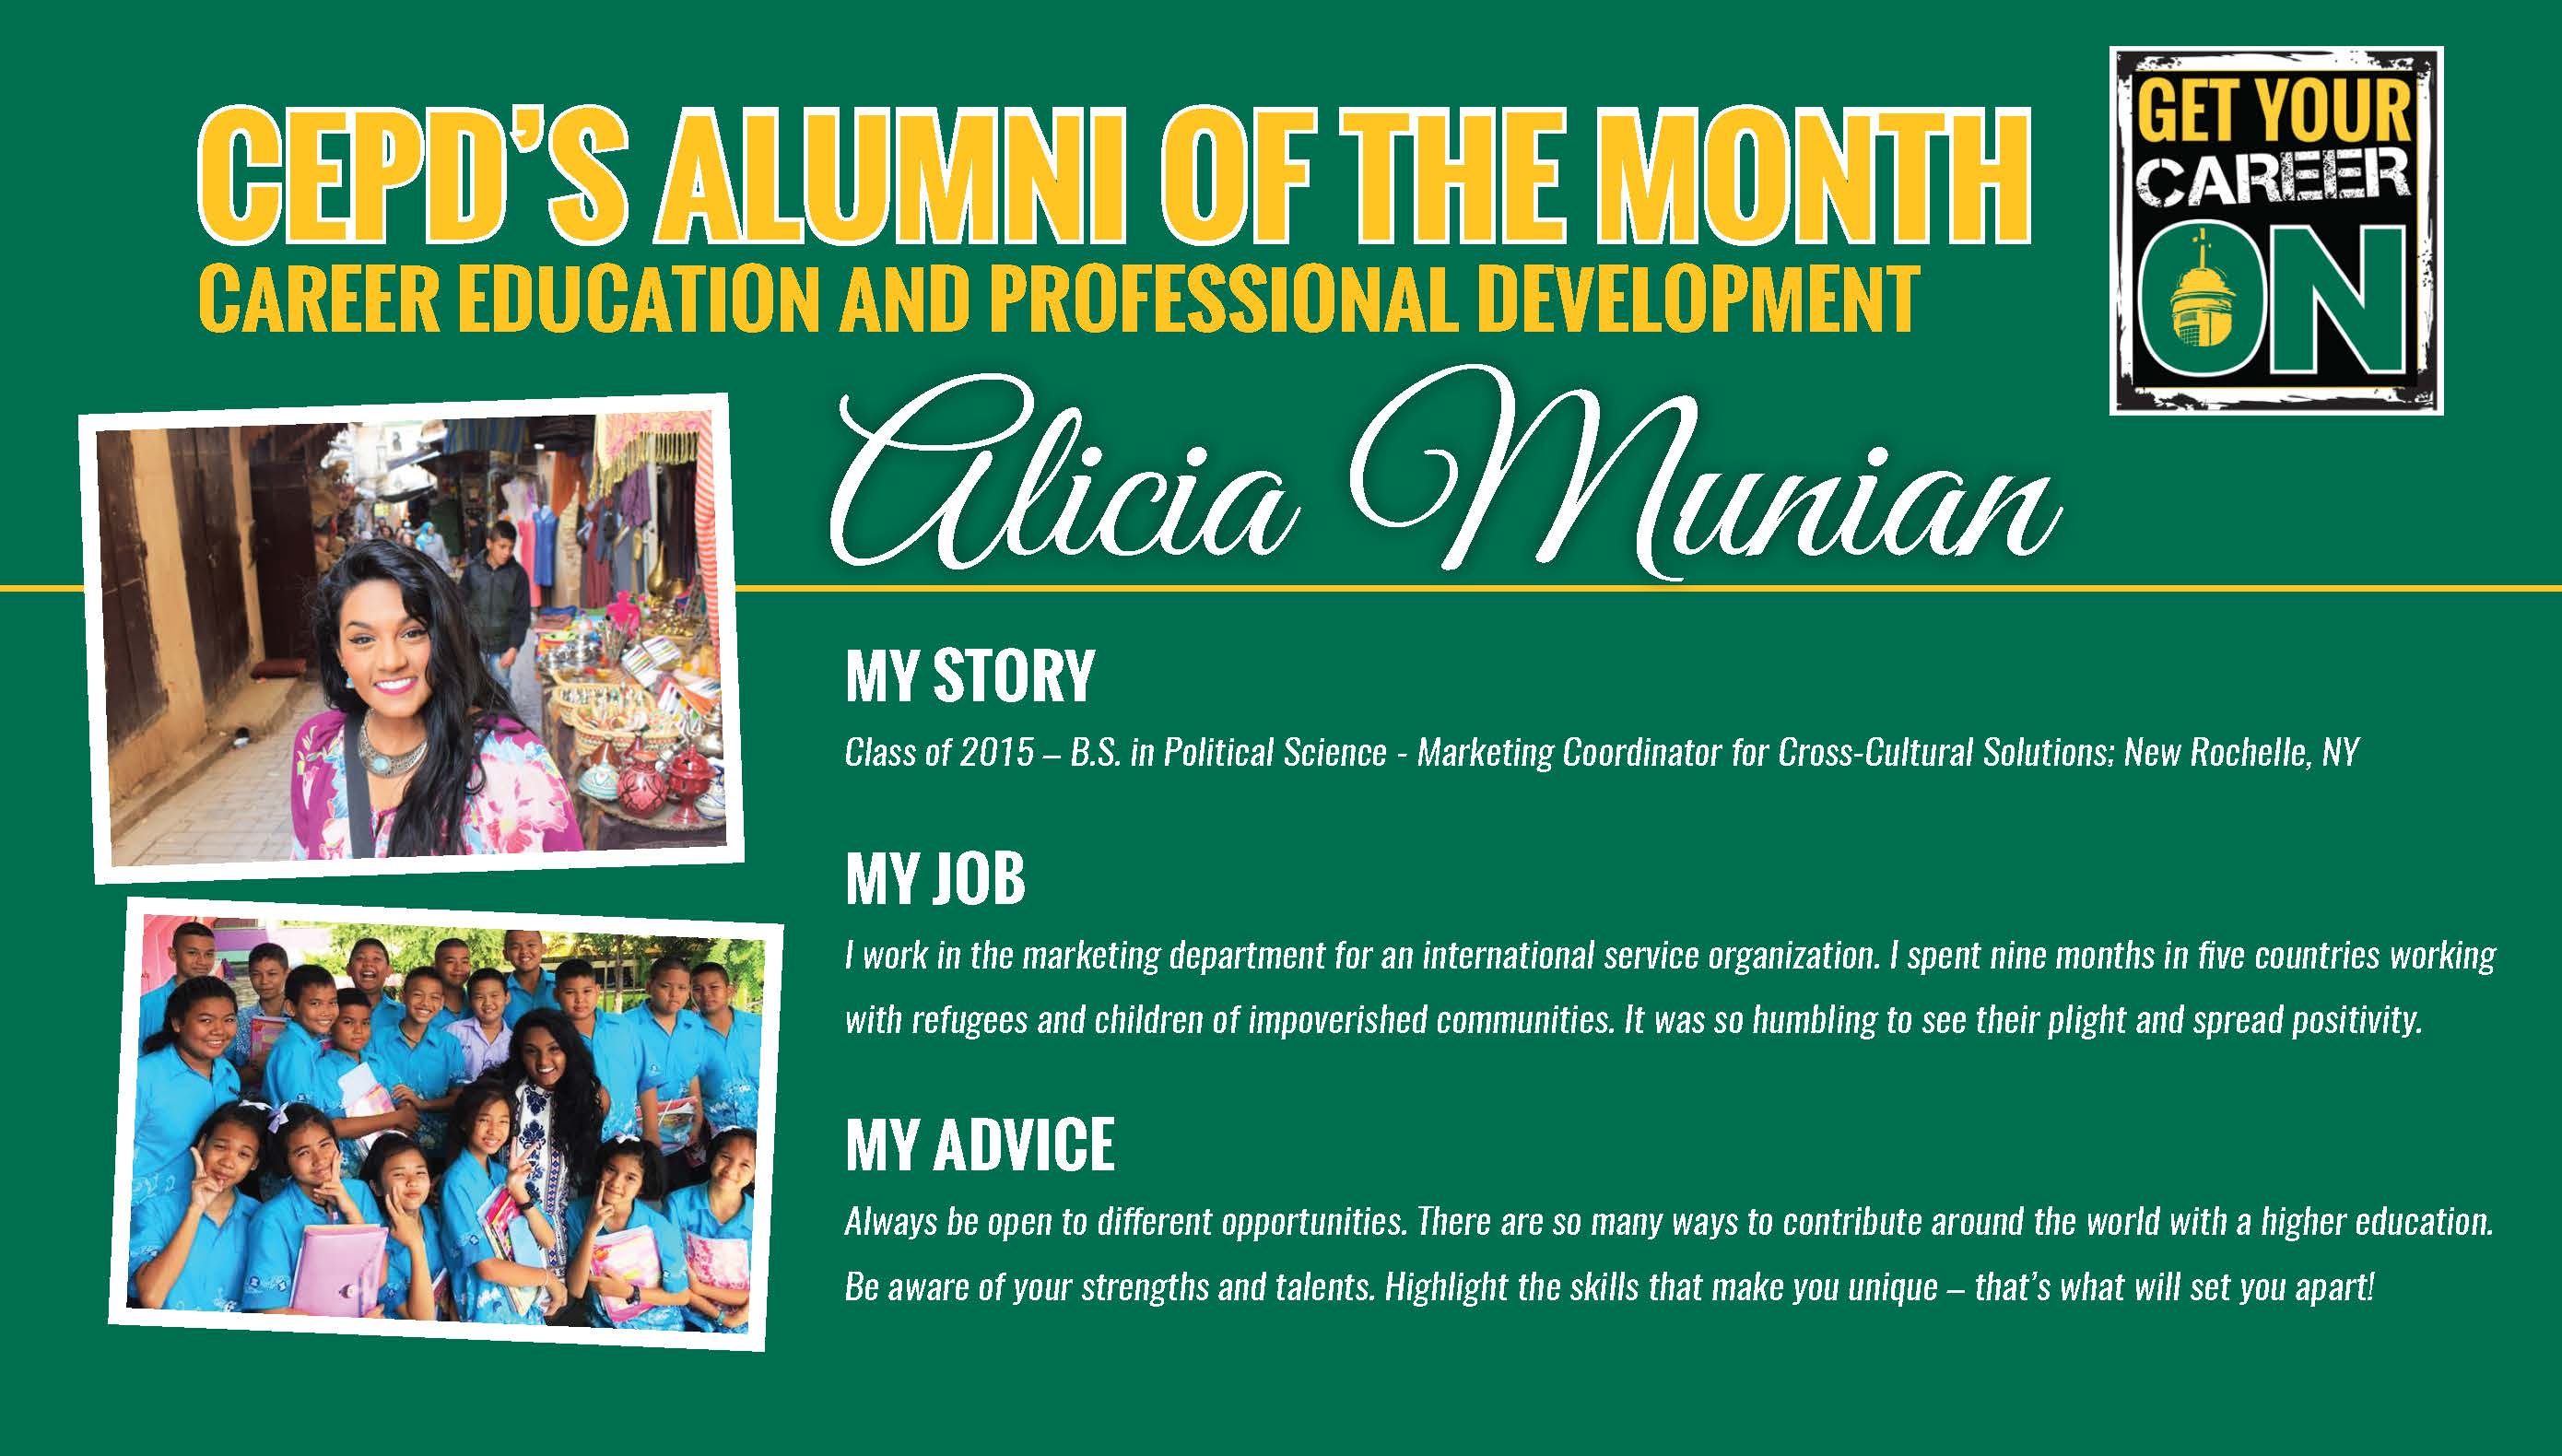 CEPD Alumni of the Month May 2018